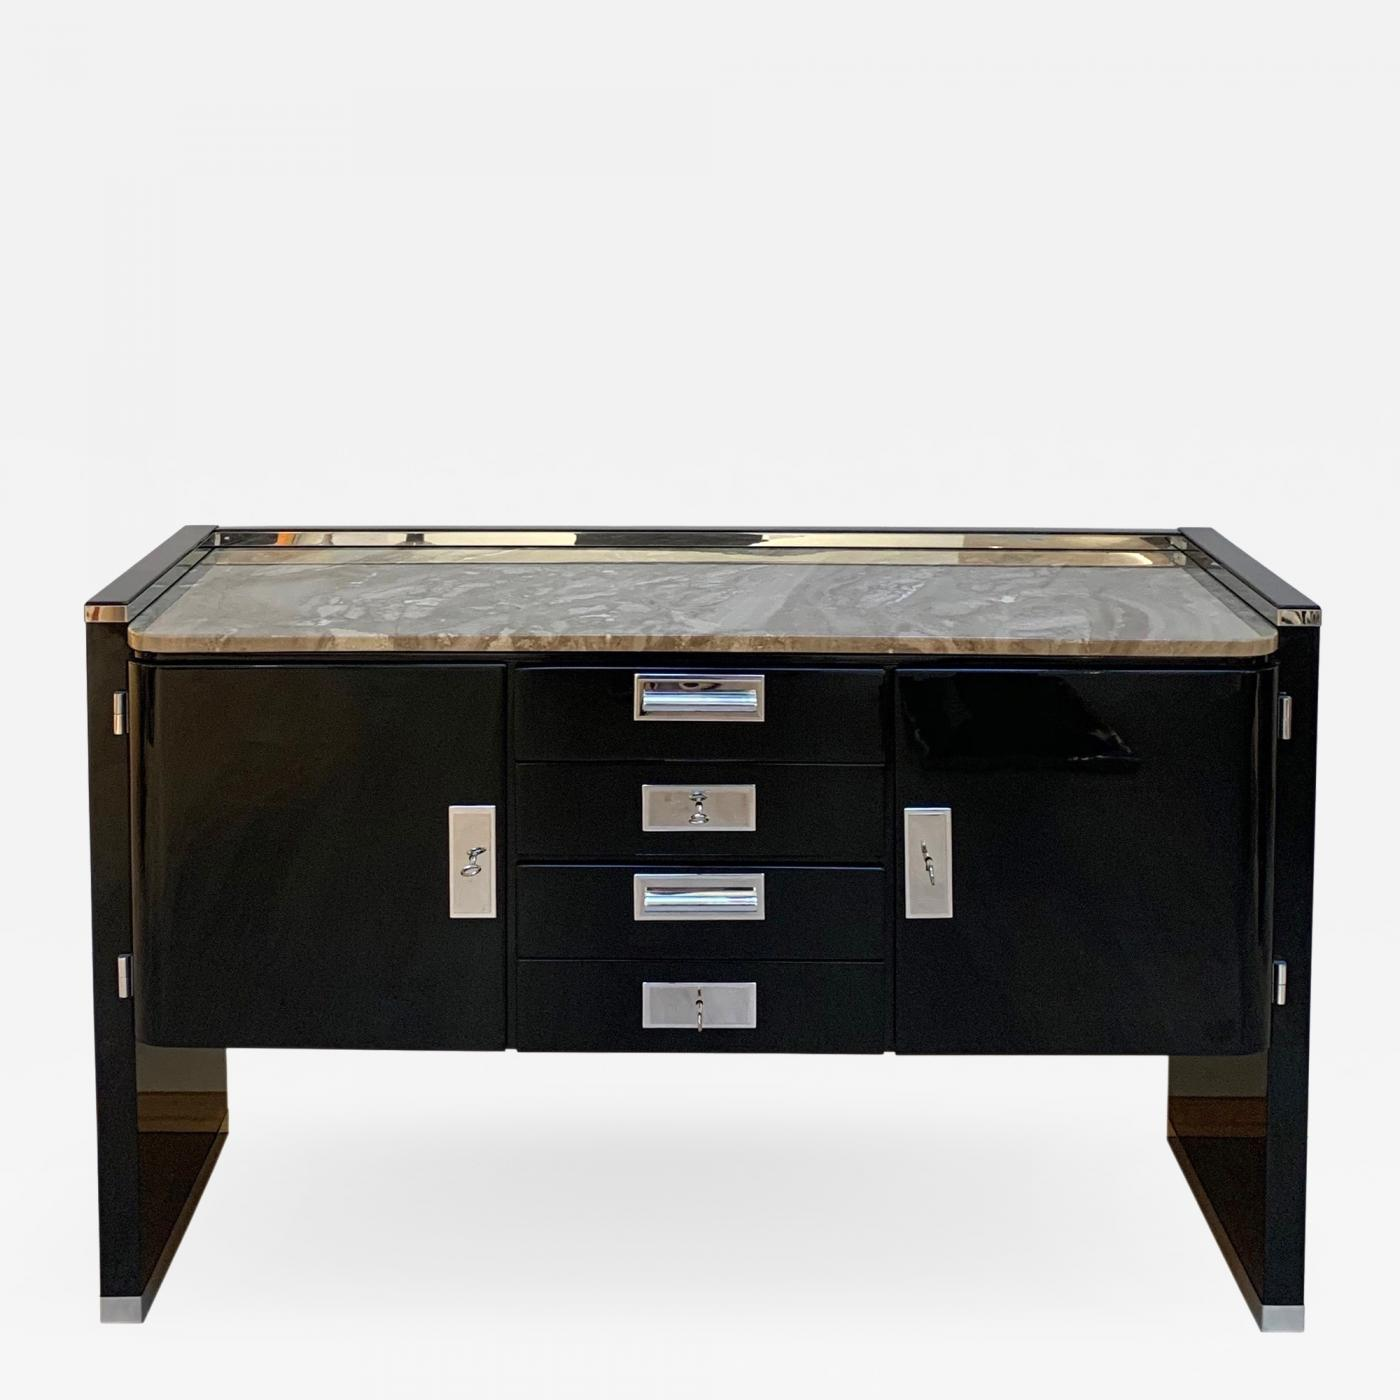 Sideboard Antik Bauhaus Sideboard, Black Lacquer, Nickel And Granite, Germany, 1920s